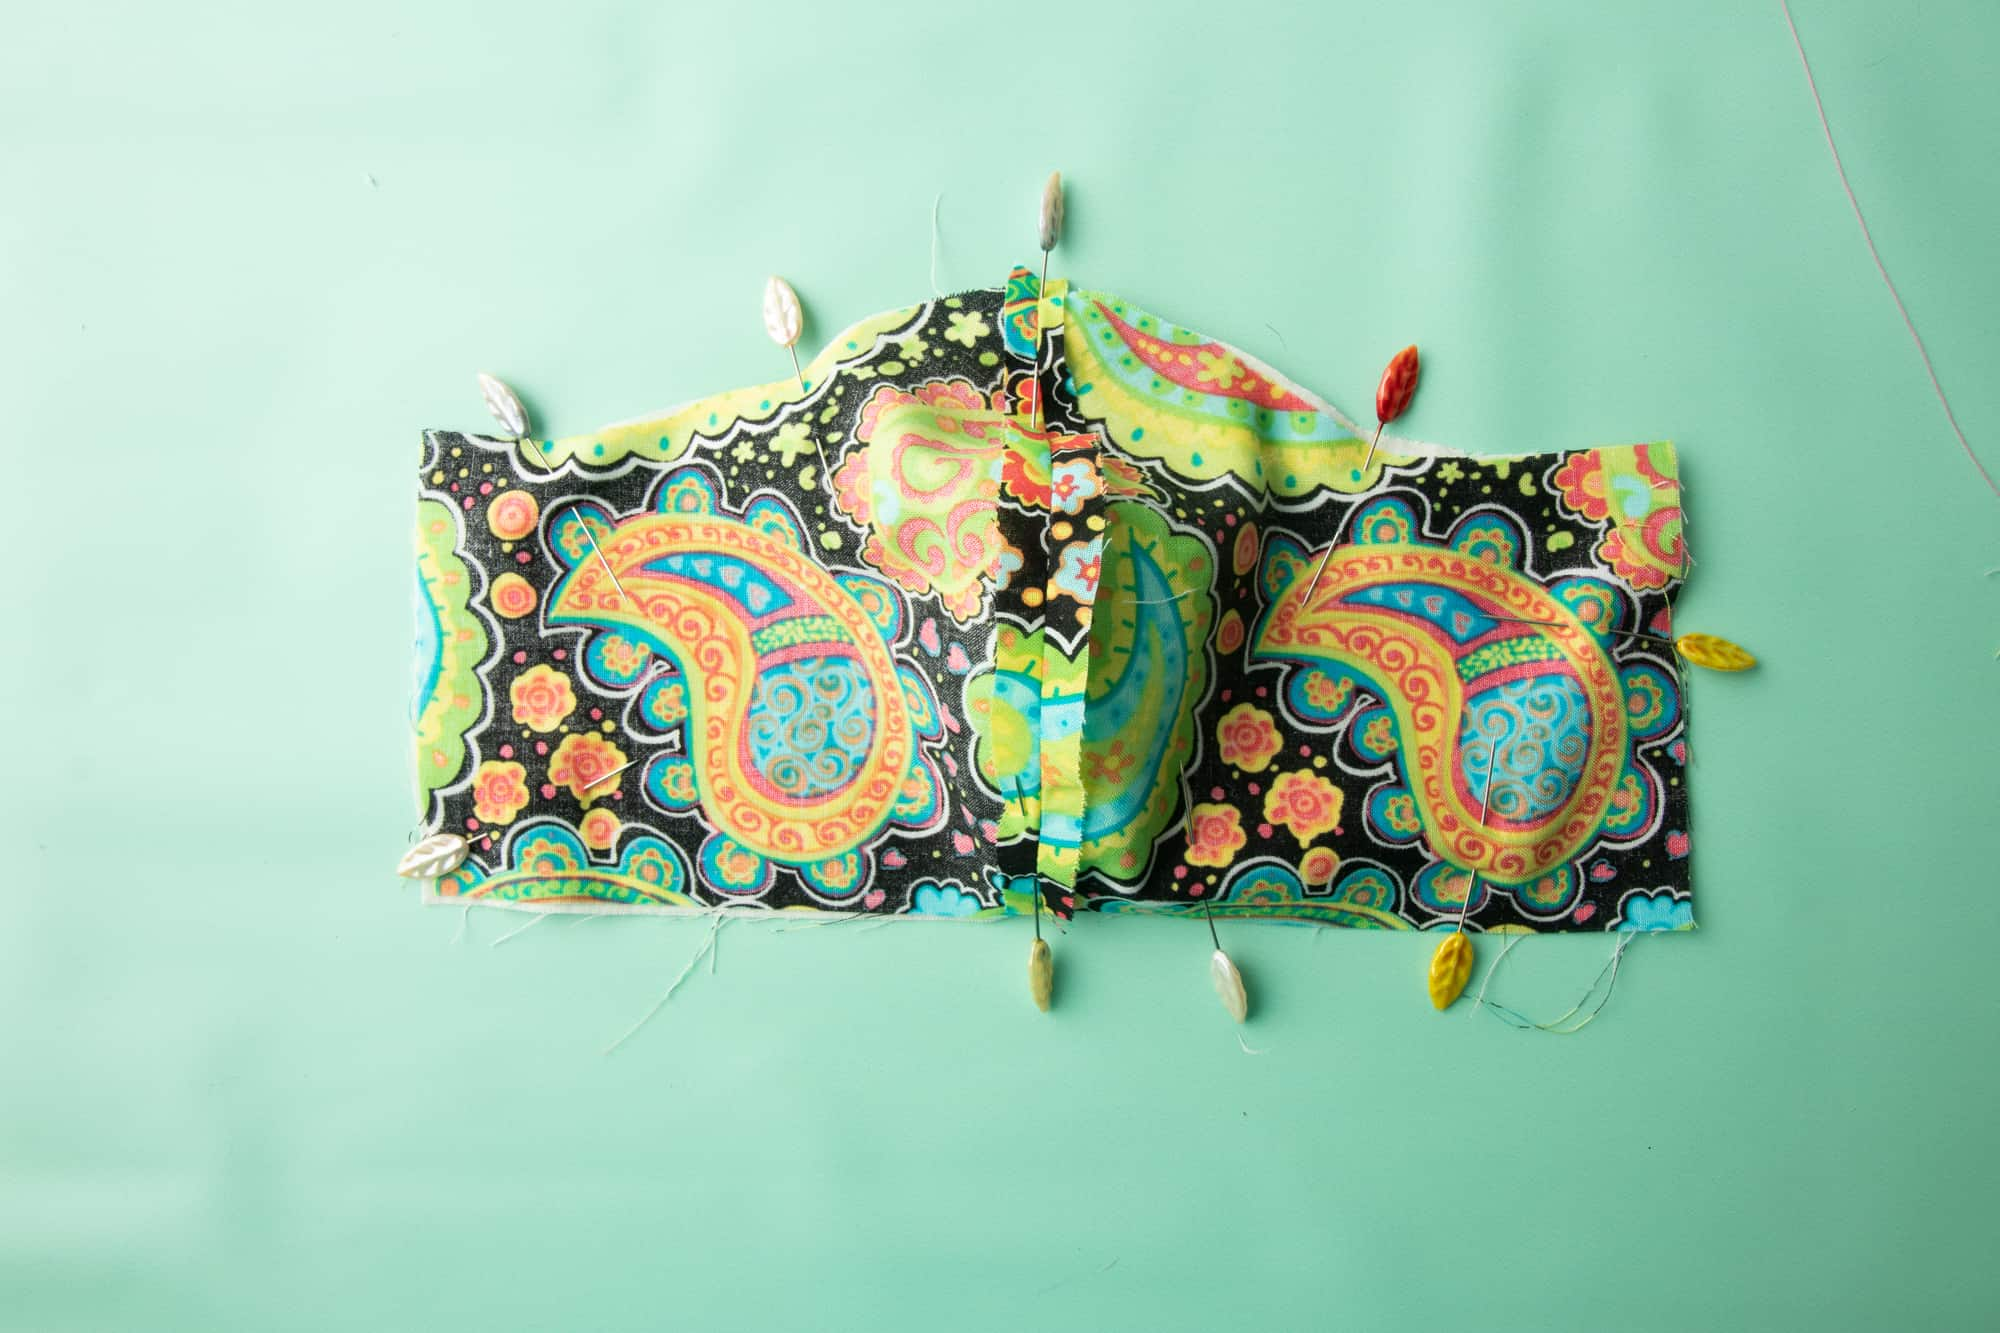 The Face mask sits on a green background with pins holding the front and back fabric pieces together.